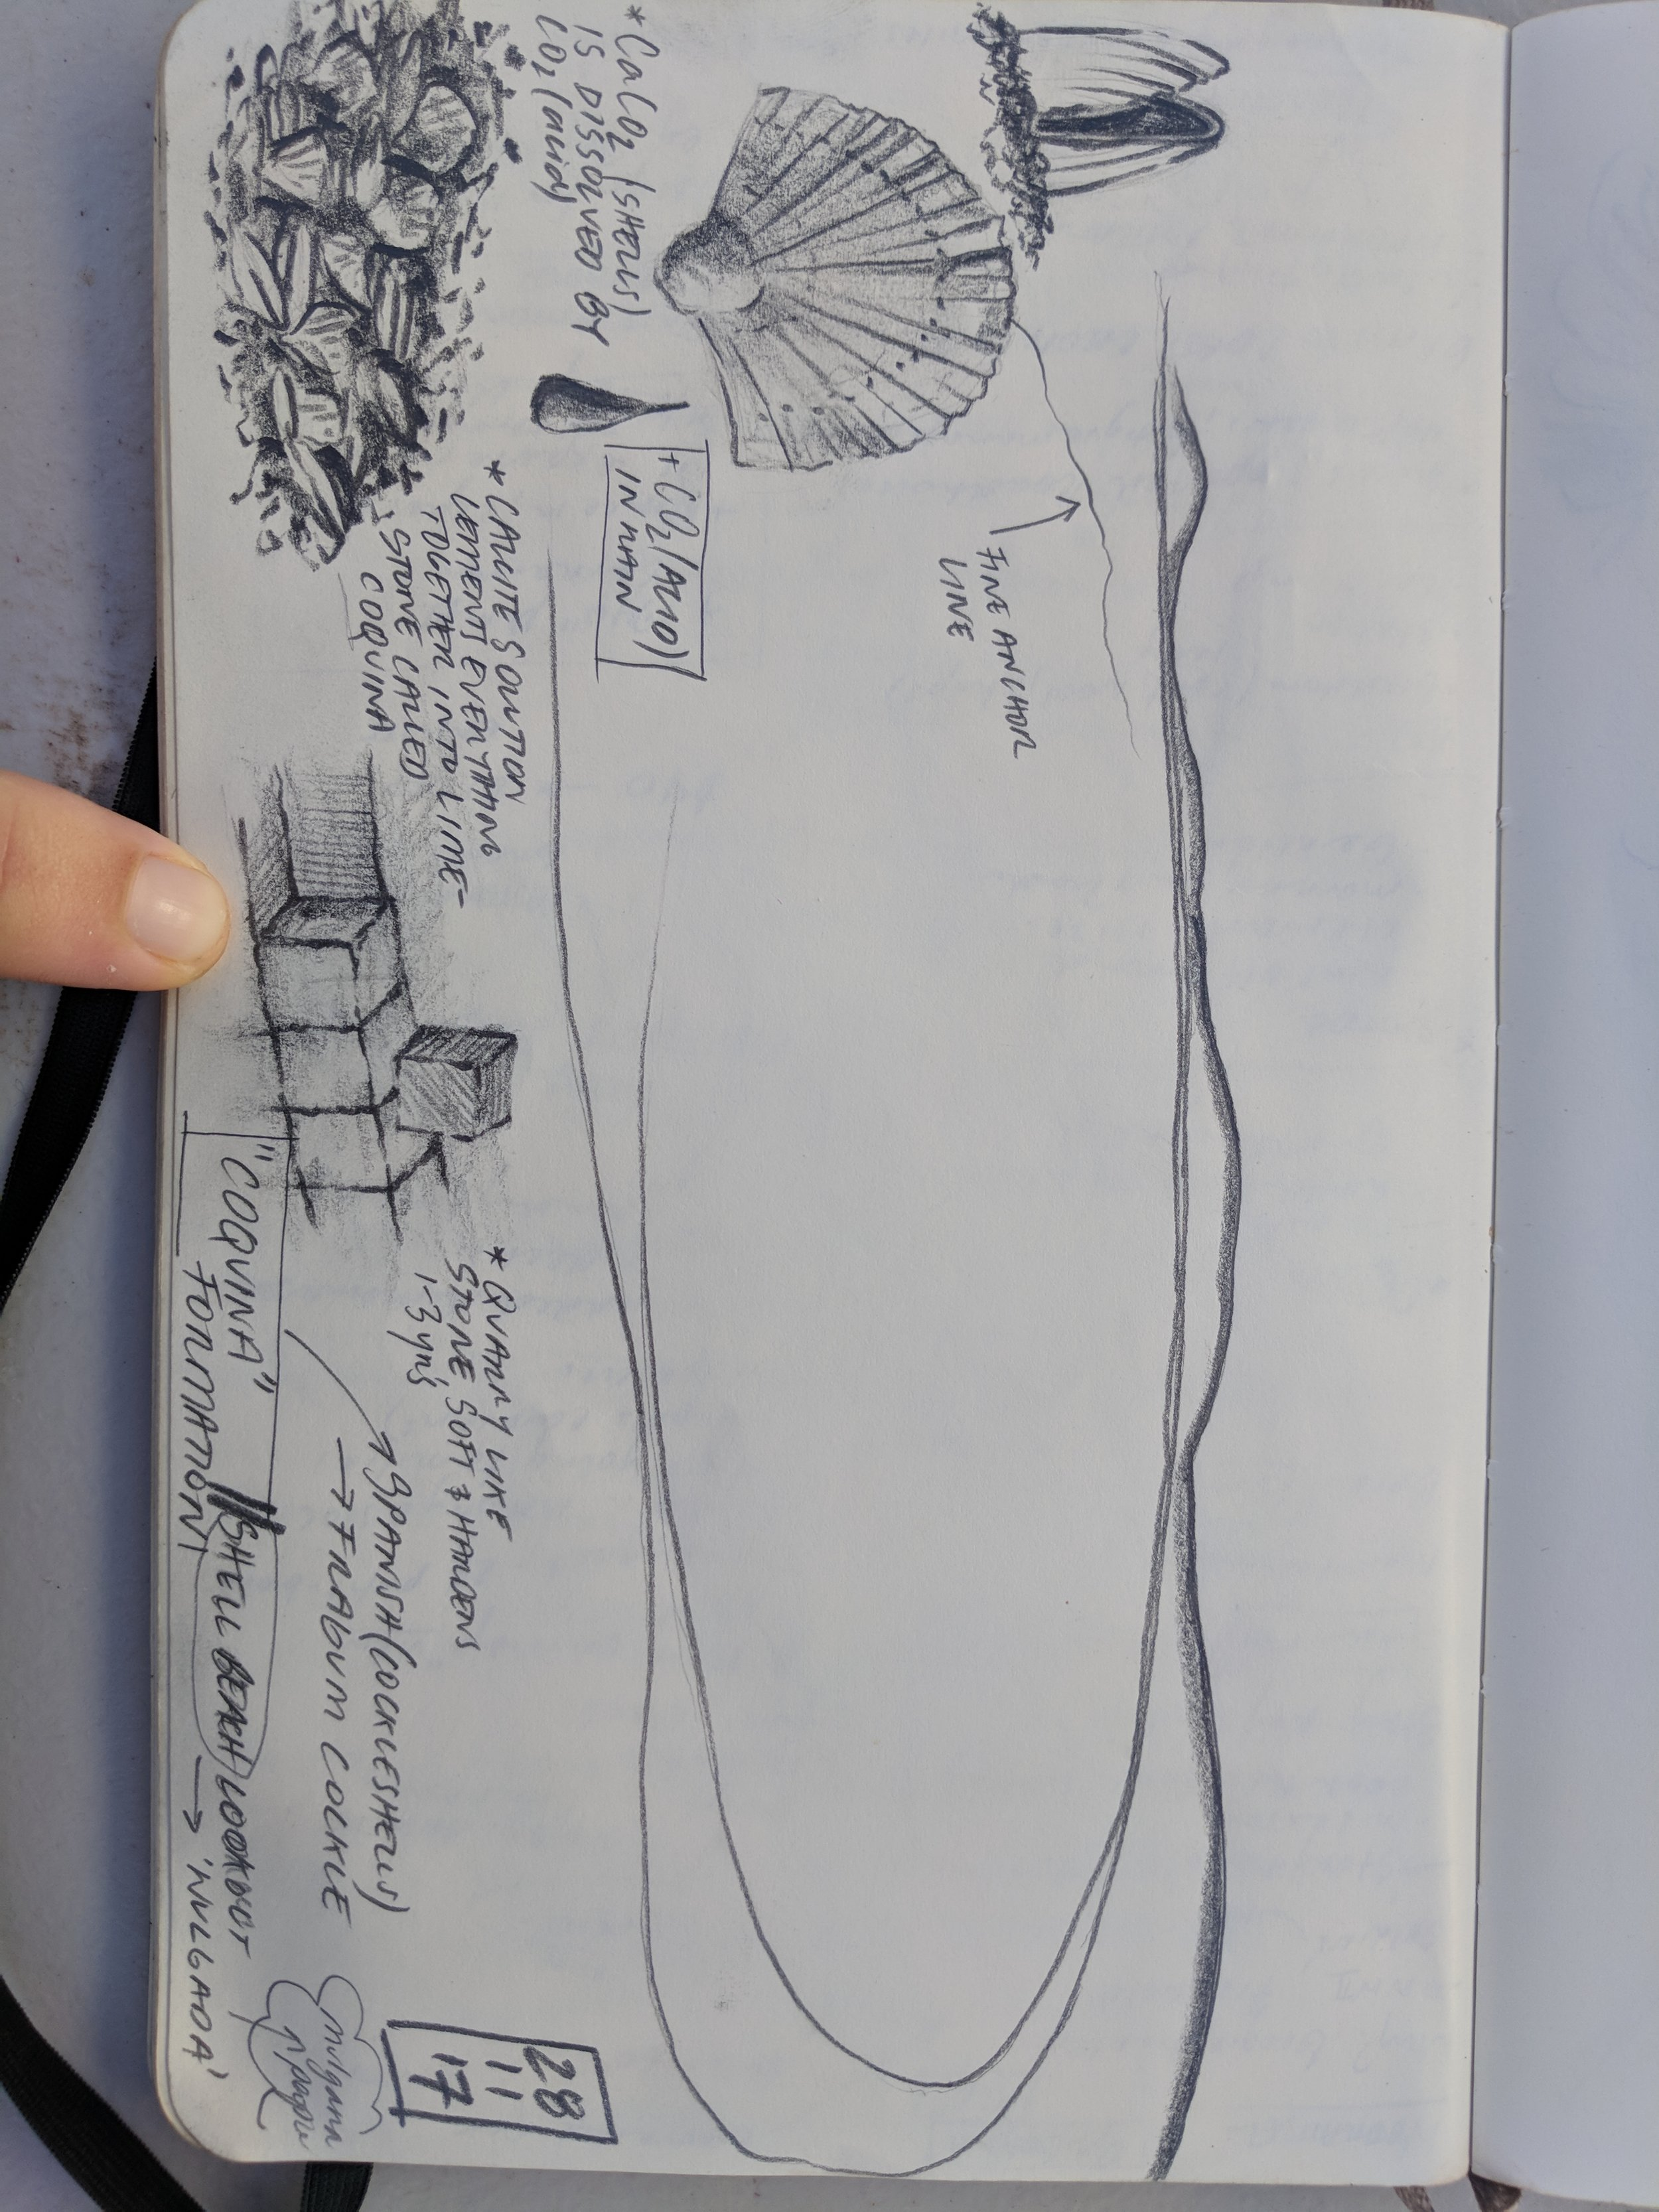 Shelly Beach Lookout sketch, magnificent lines